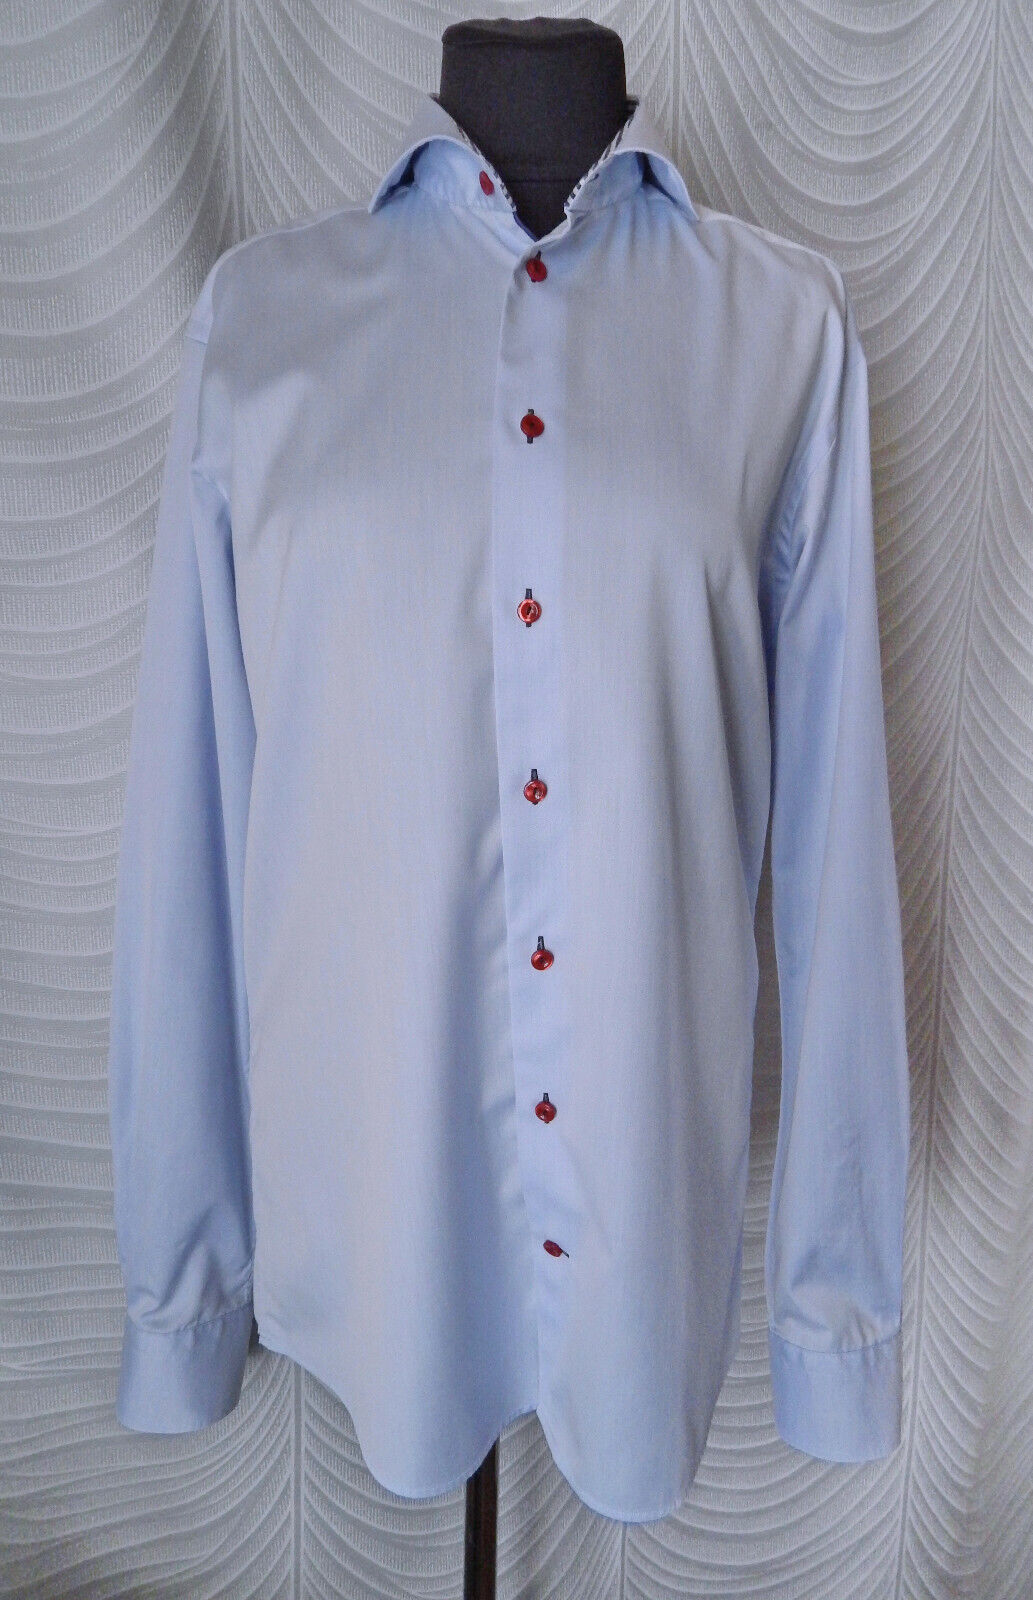 Eton Slim bluee Shirt Size 41 16 Contrast Red  Buttons